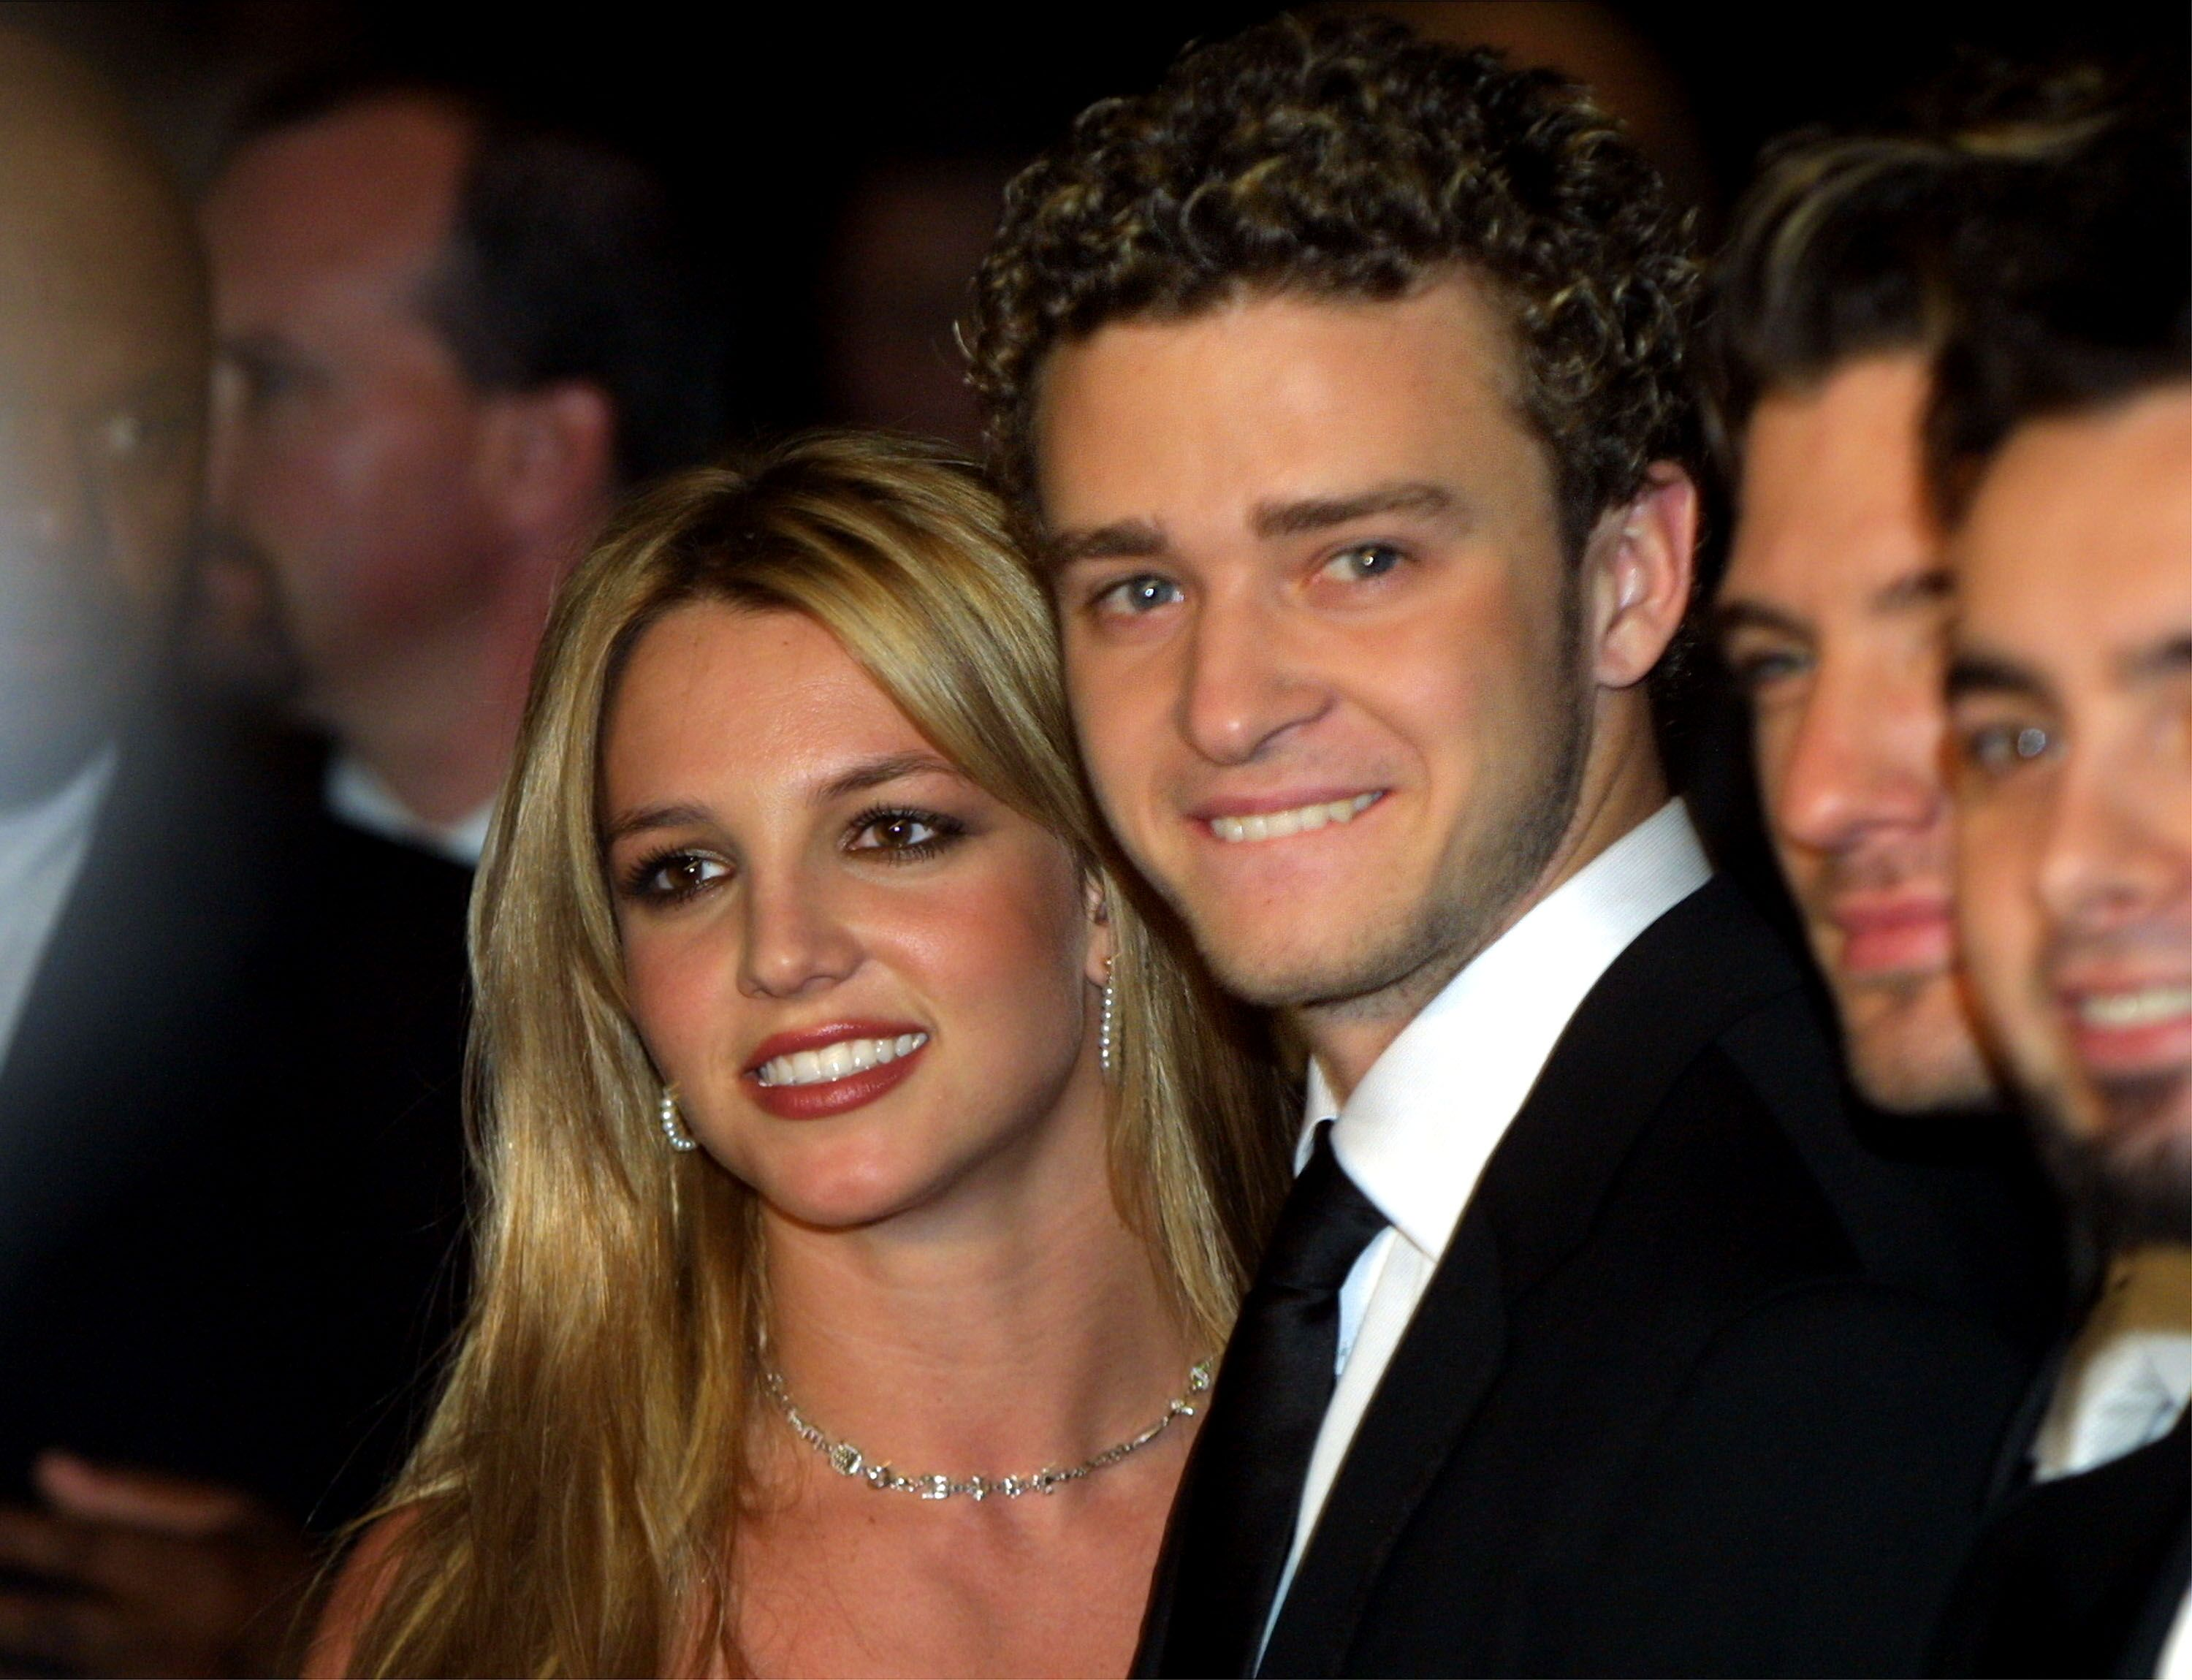 Britney Spears and boyfriend Justin Timberlake from the band N'sync at Clive Davis'' pre-grammy awards gala in 2002 in Beverly Hills | Source: Getty Images